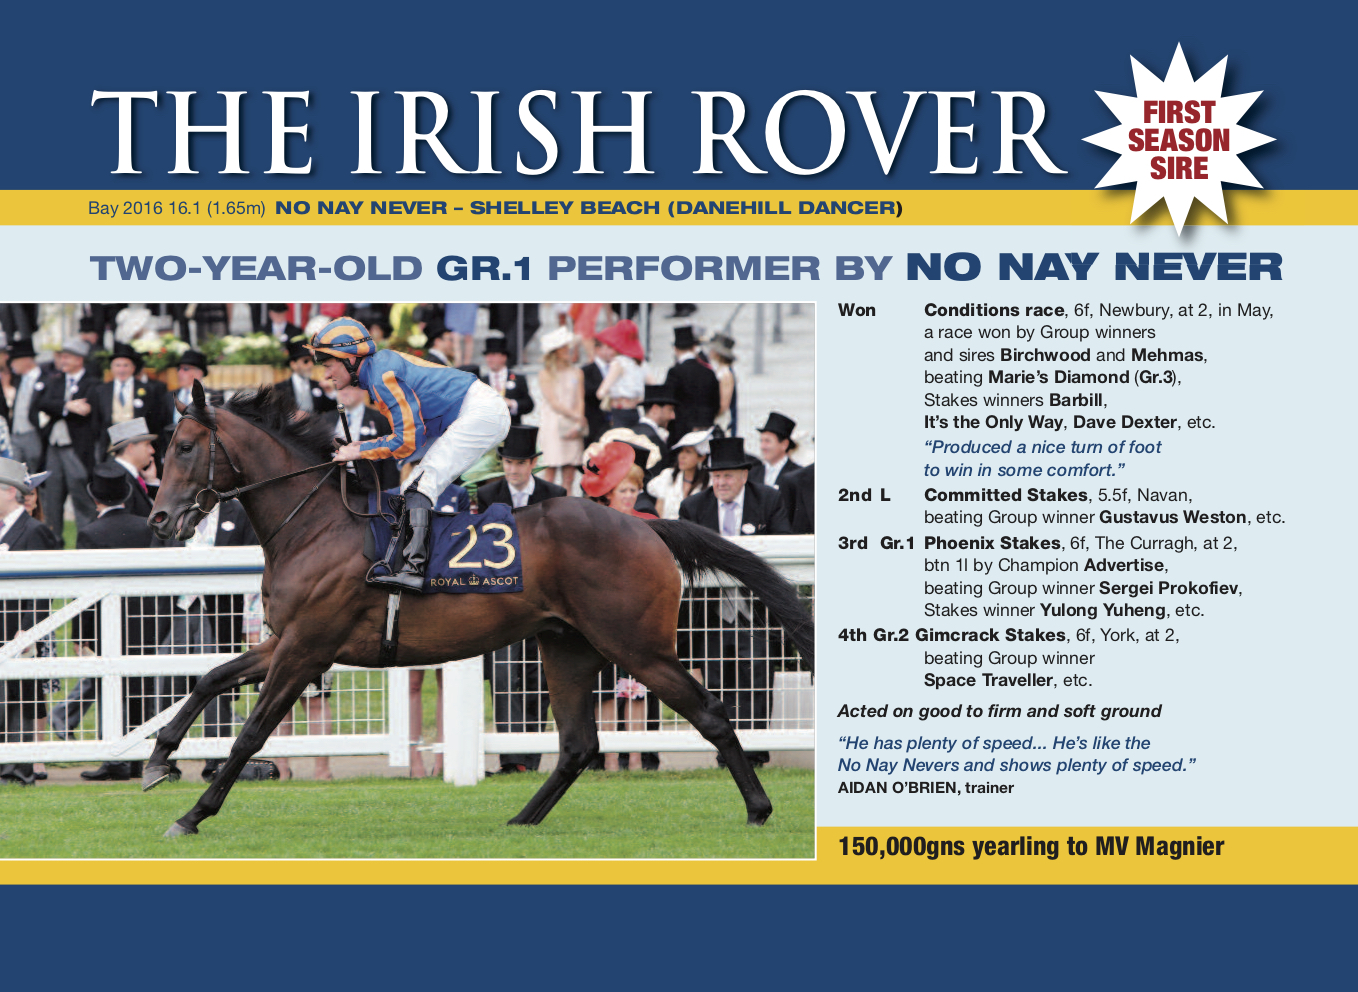 The Irish Rover(5)